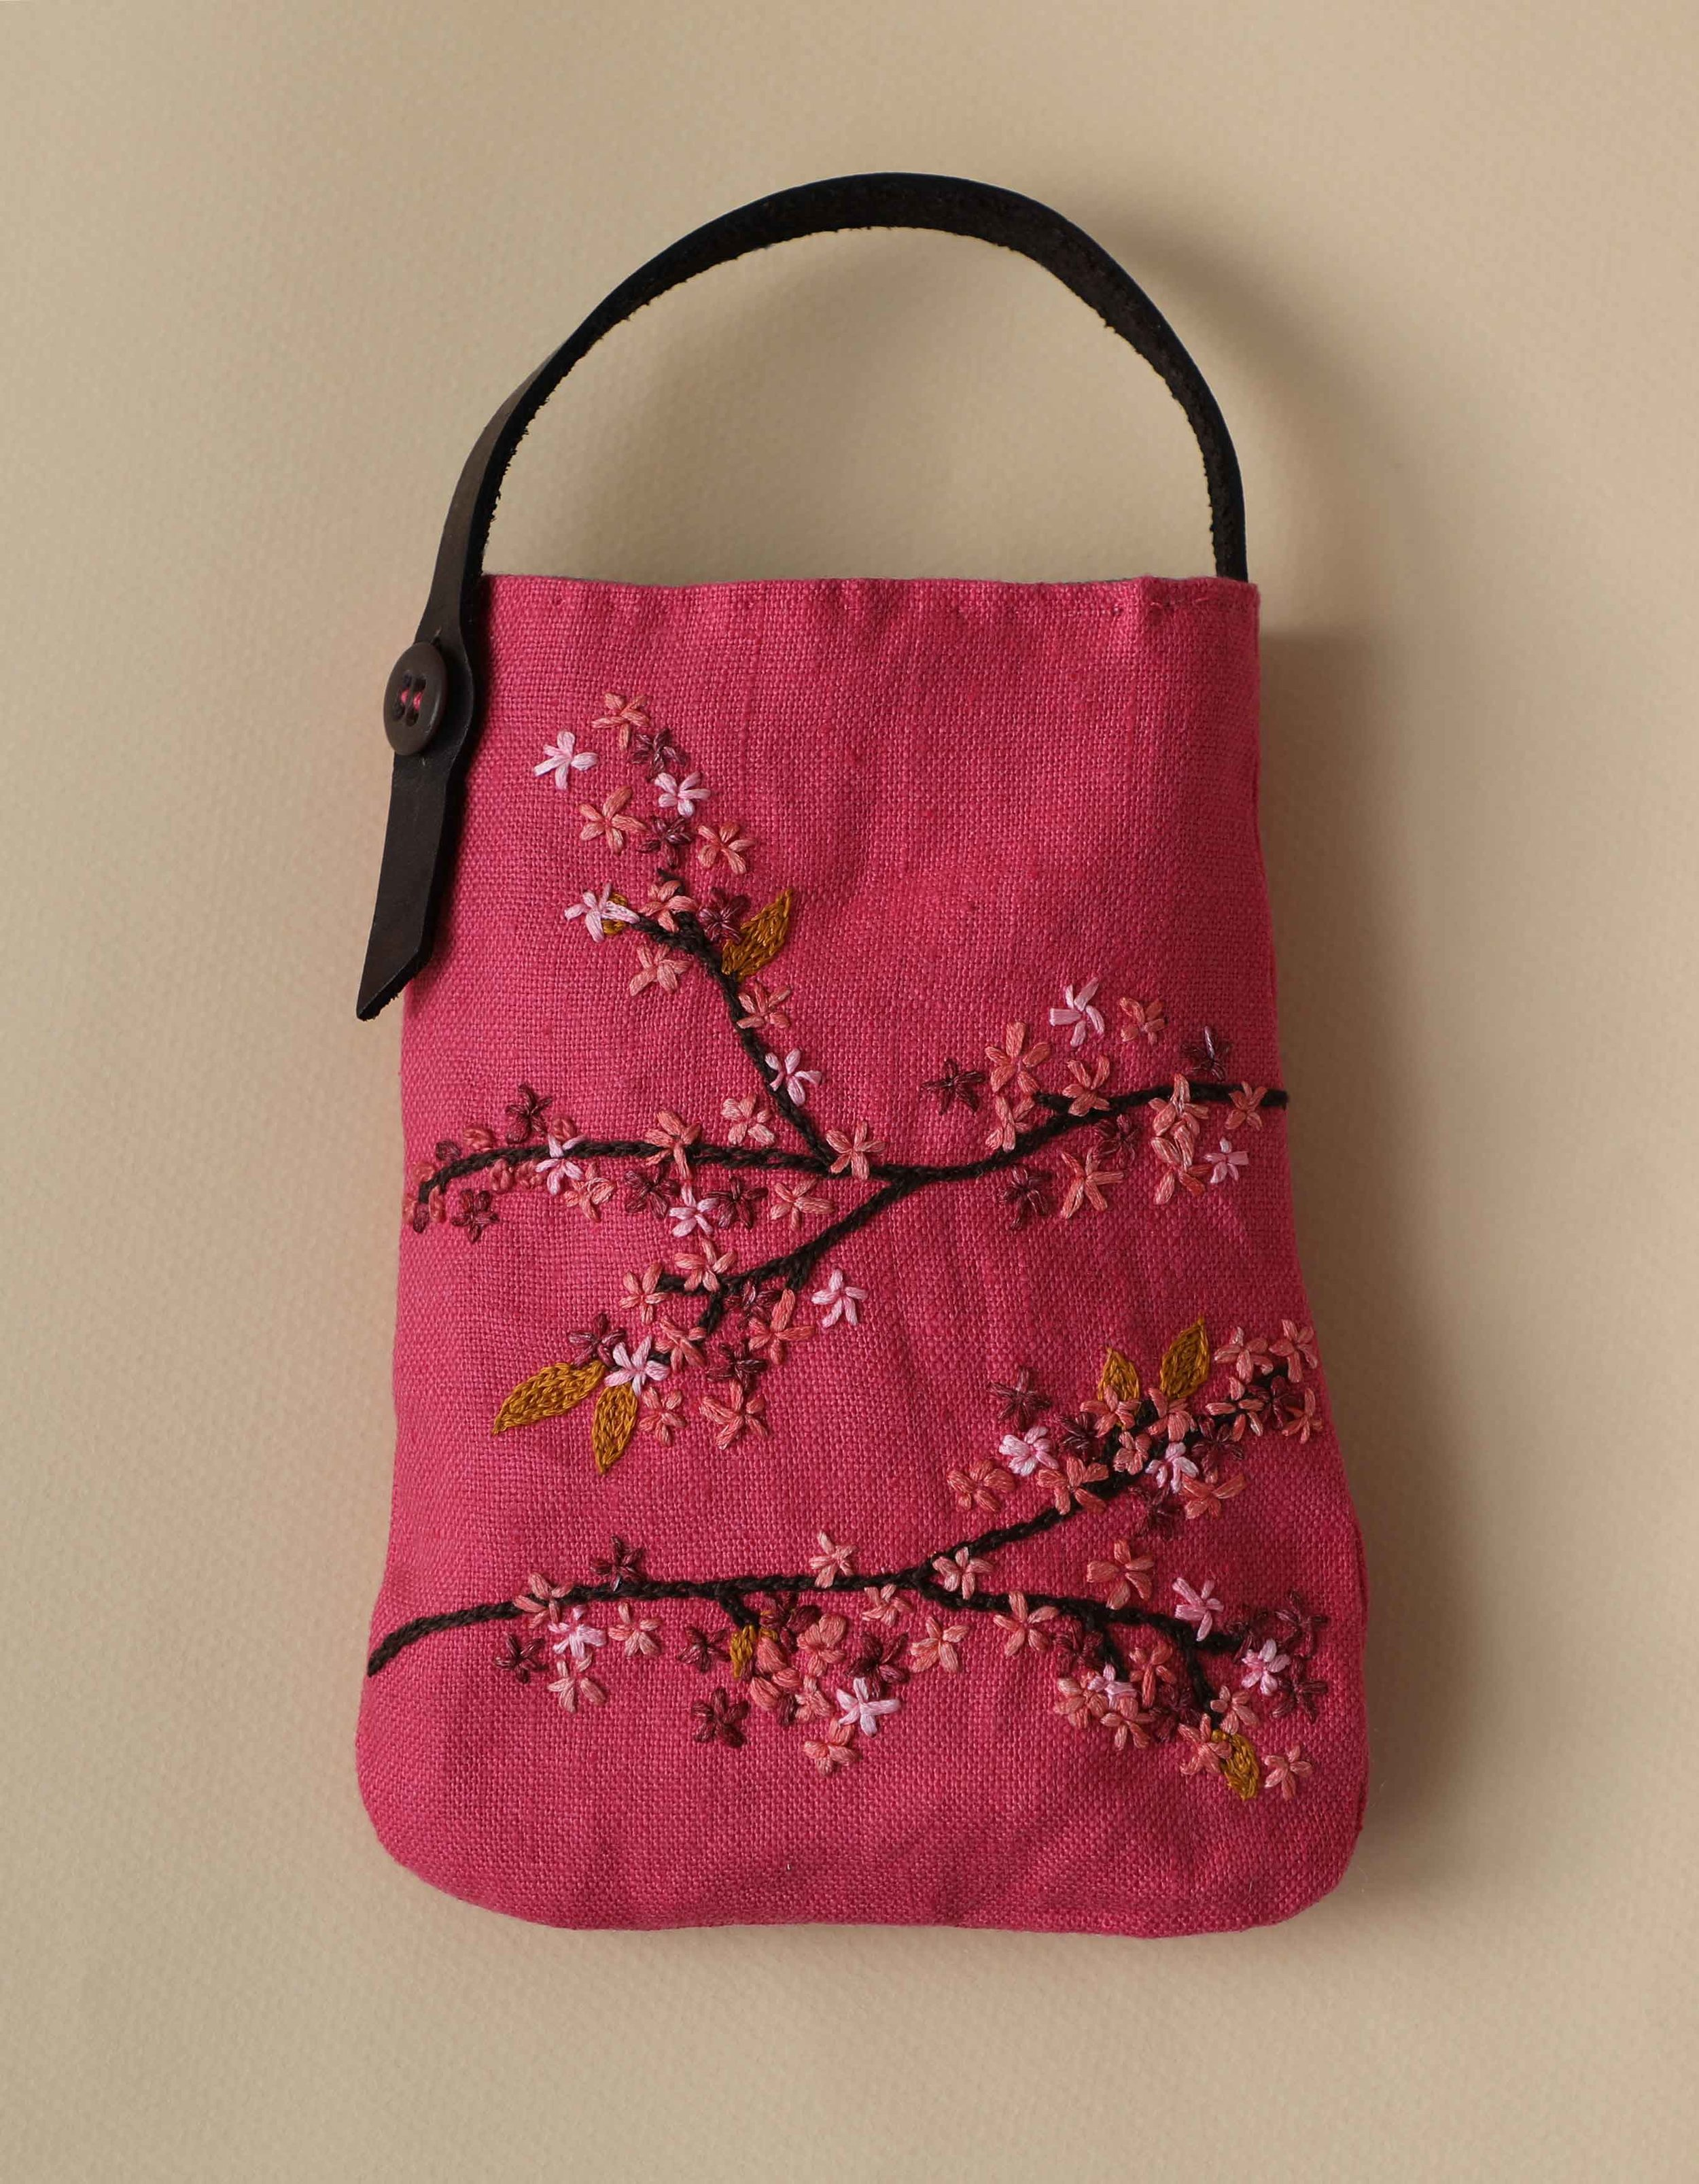 This embroidered bag would be a great project to do with girlfriends. Stitch plum blossoms or whatever else you'd like with simple stitches such as chainstitch.